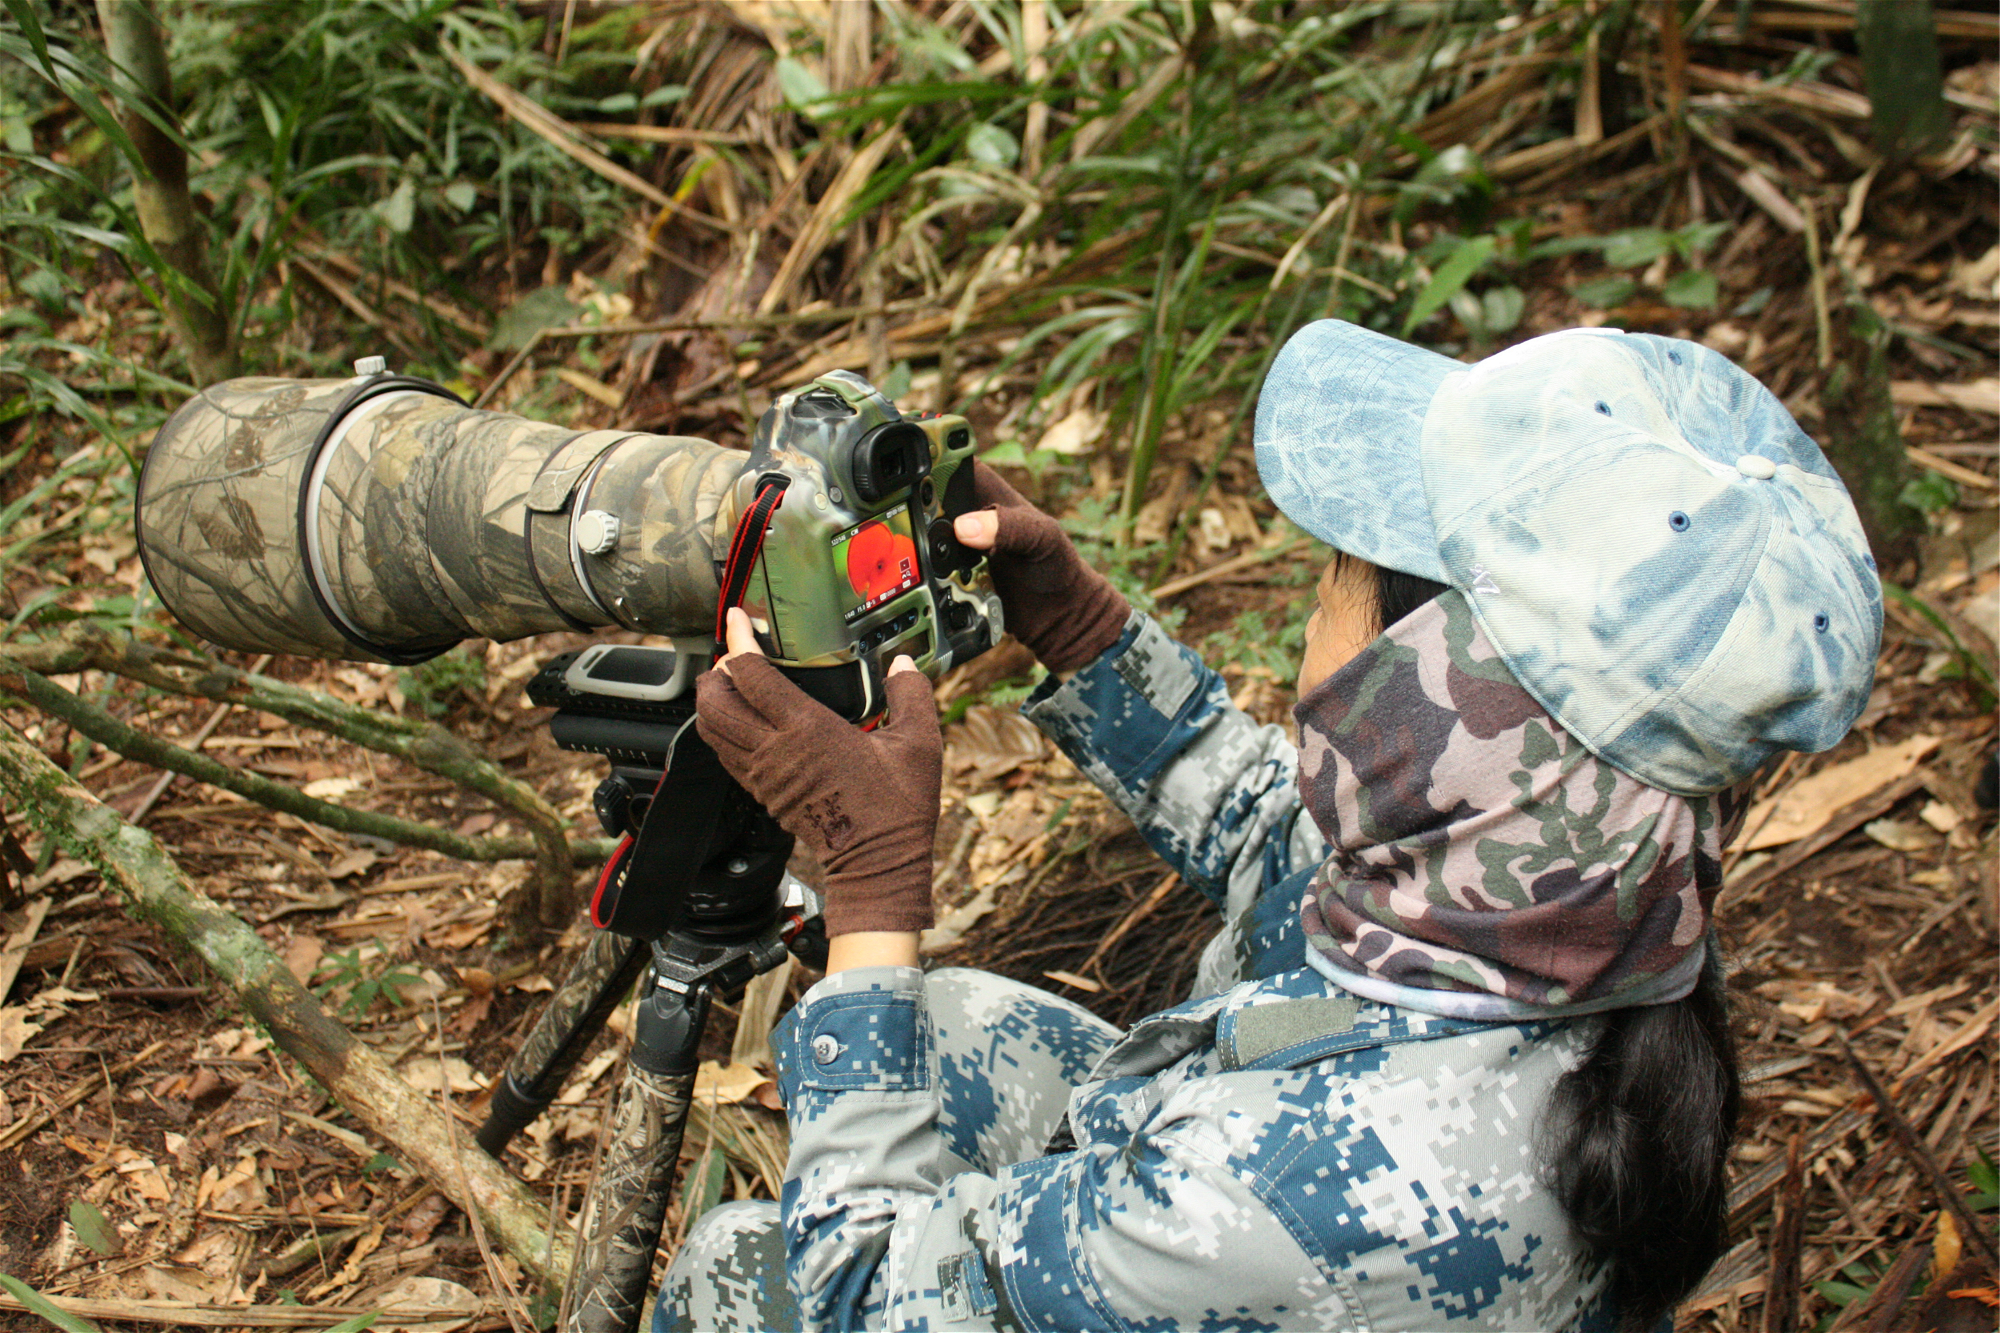 Chinese ecotourists in hunt for Colombia's rare cock-of-the